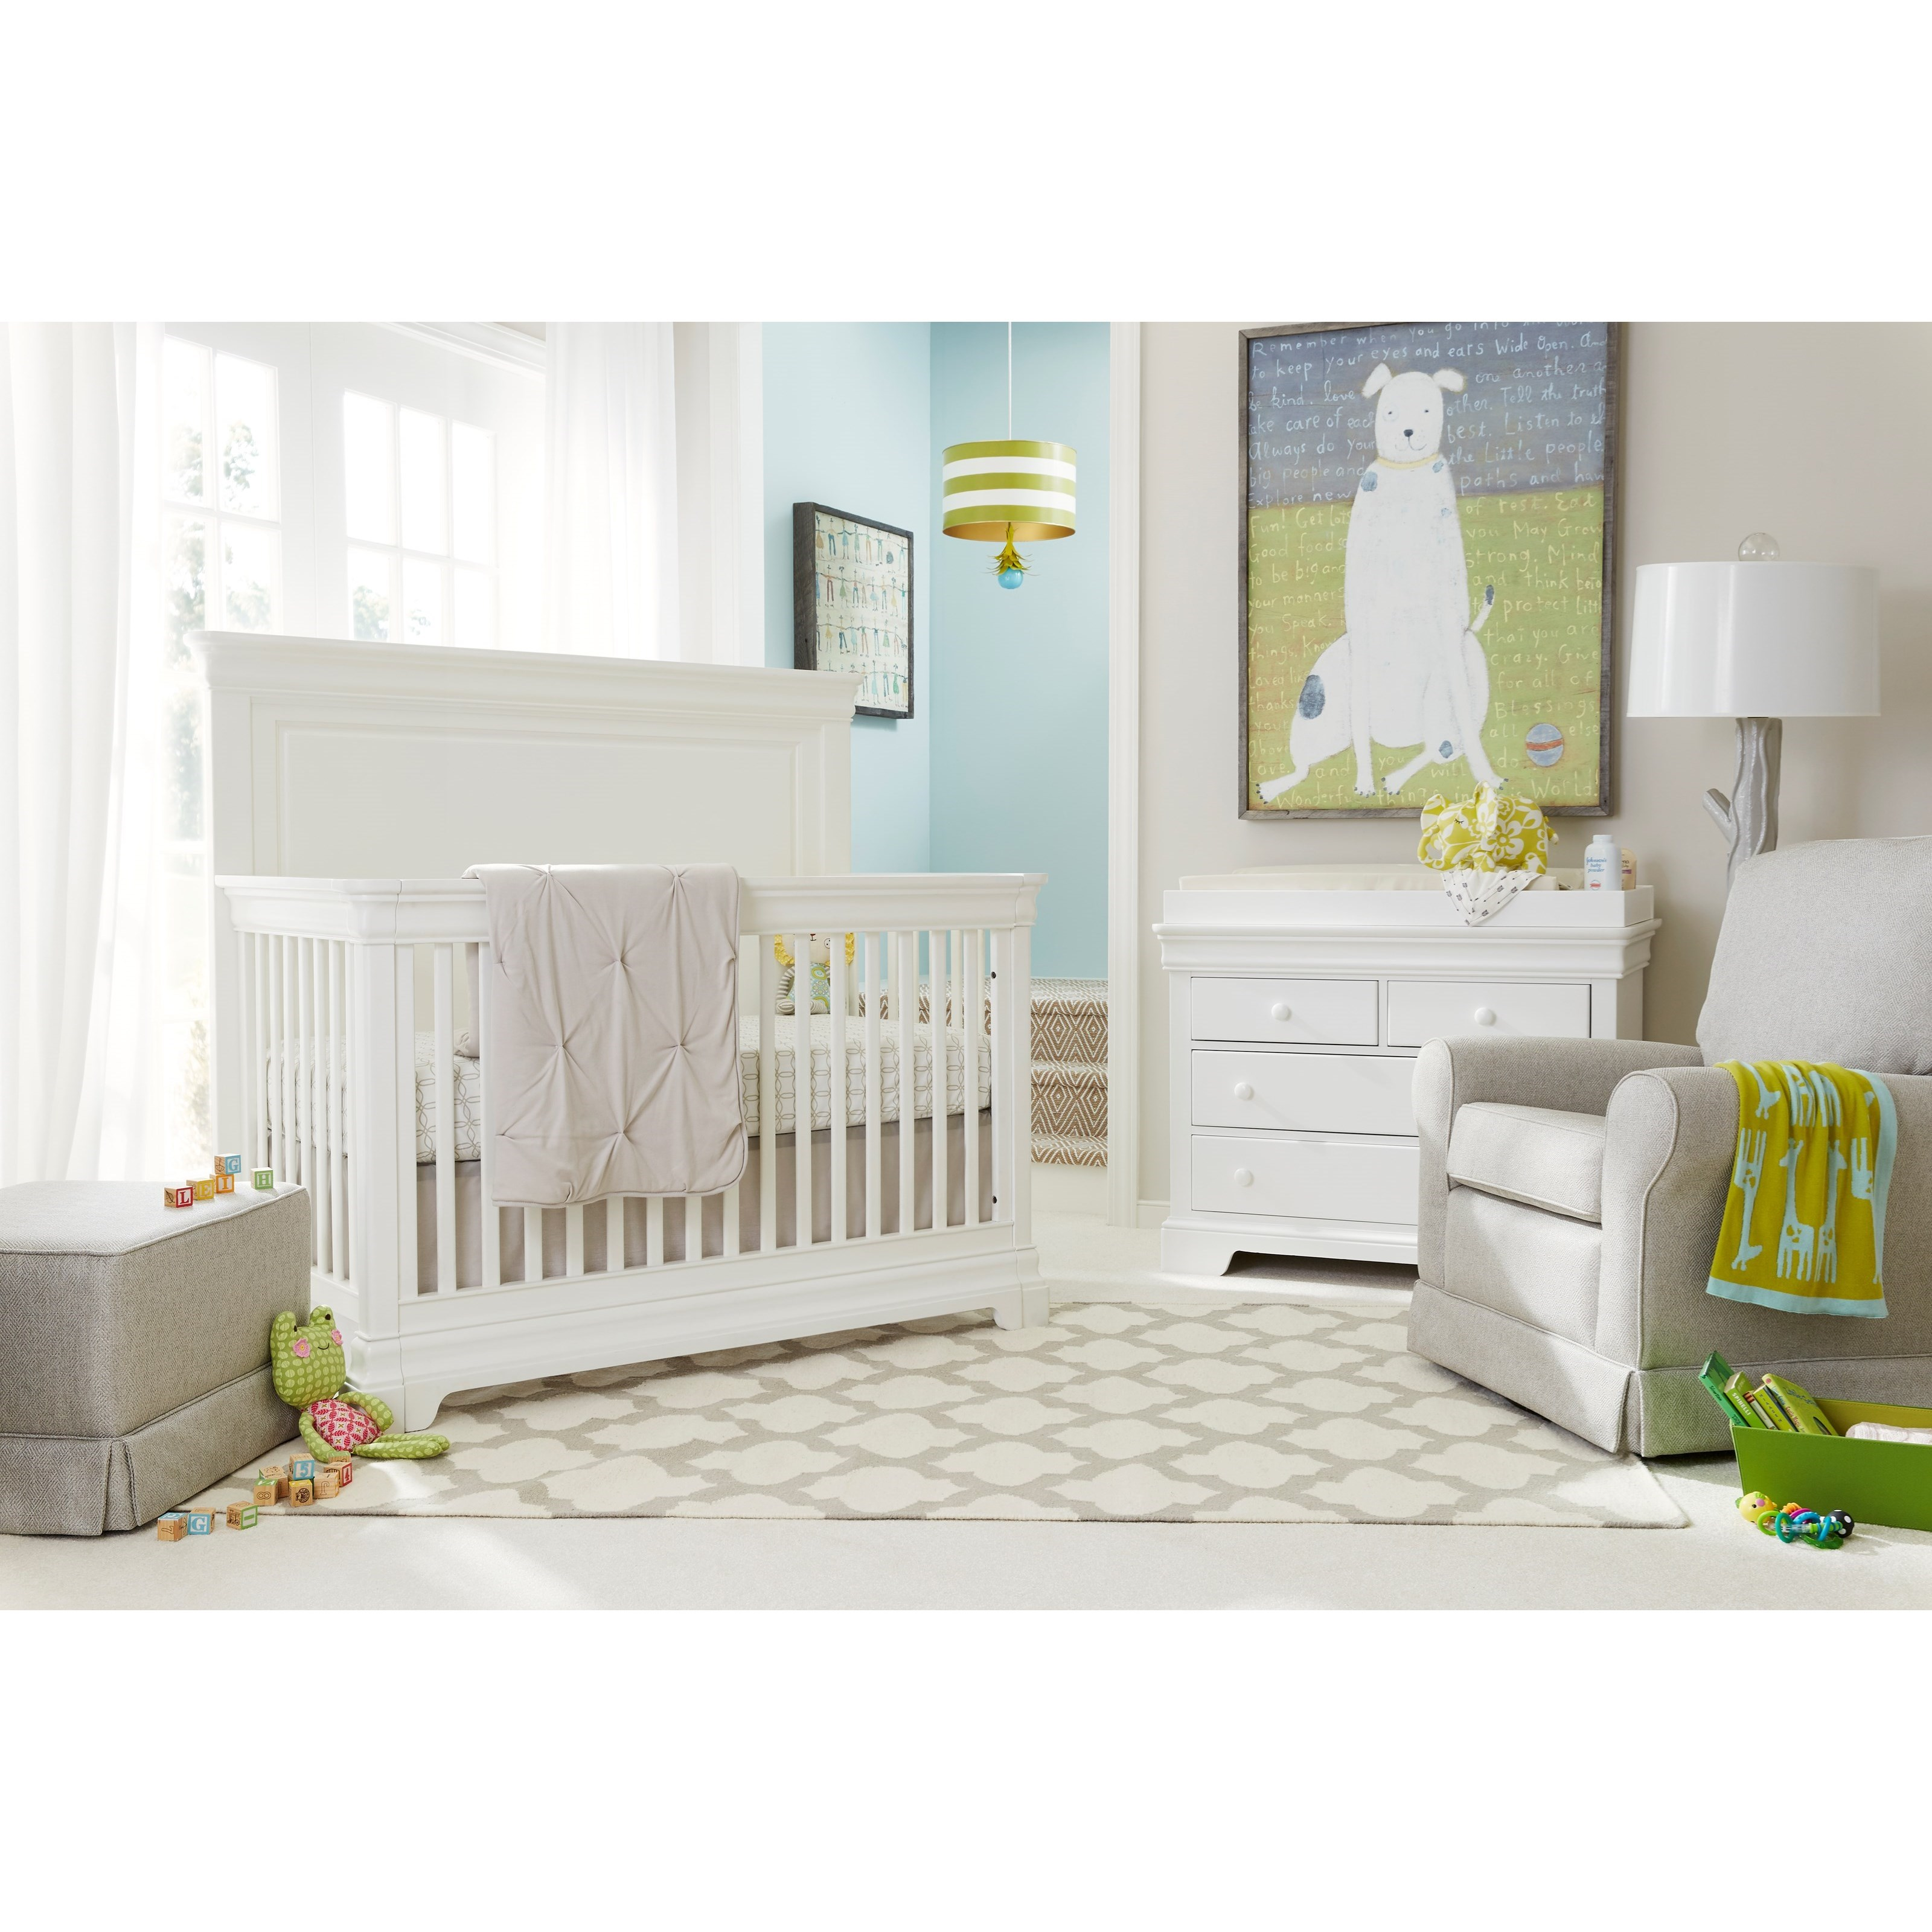 Stone & Leigh Furniture Teaberry Lane Crib Bedroom Group - Item Number: 575-23 C Bedroom Group 1